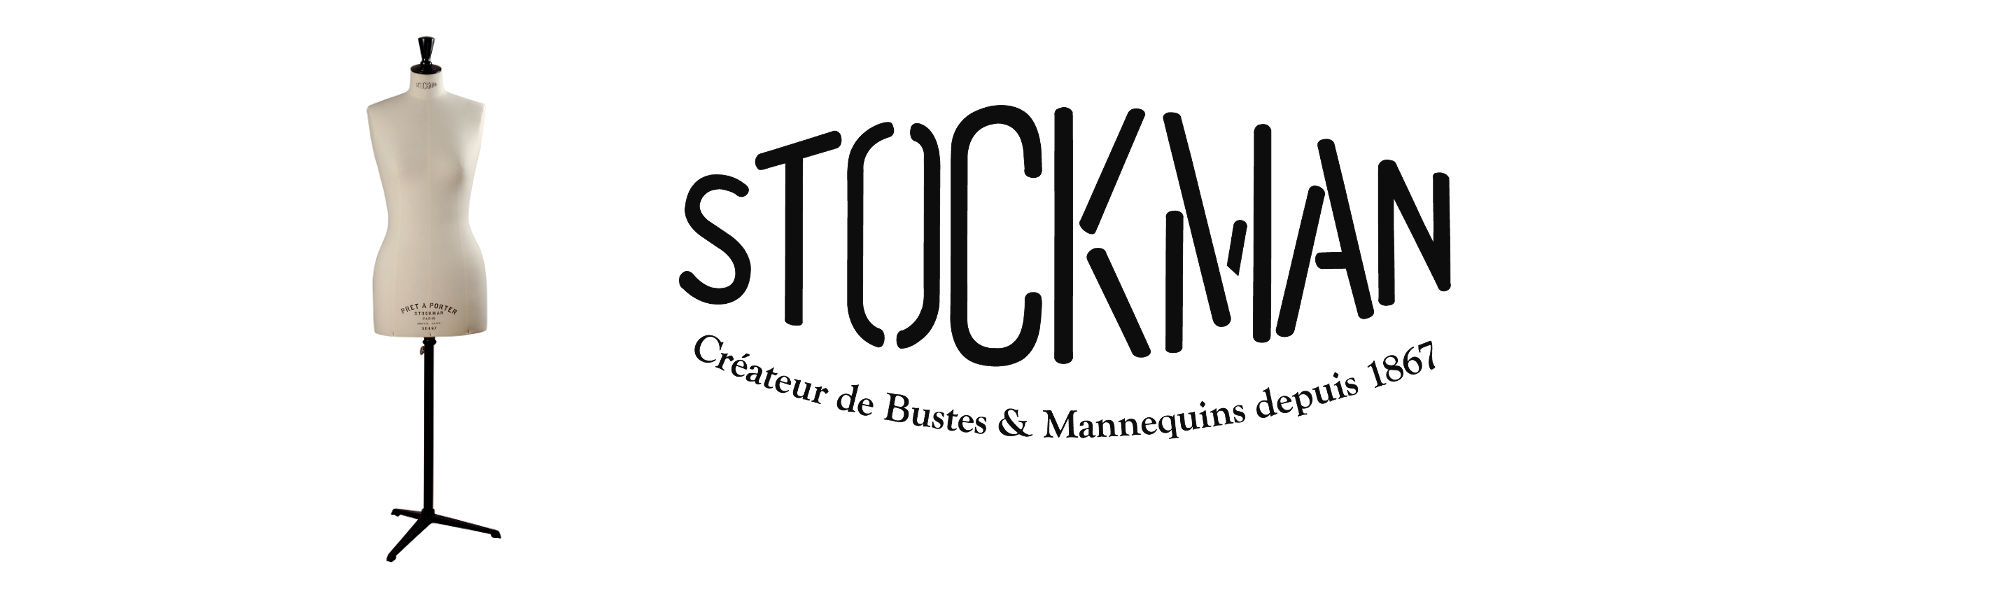 Stockman taille 38